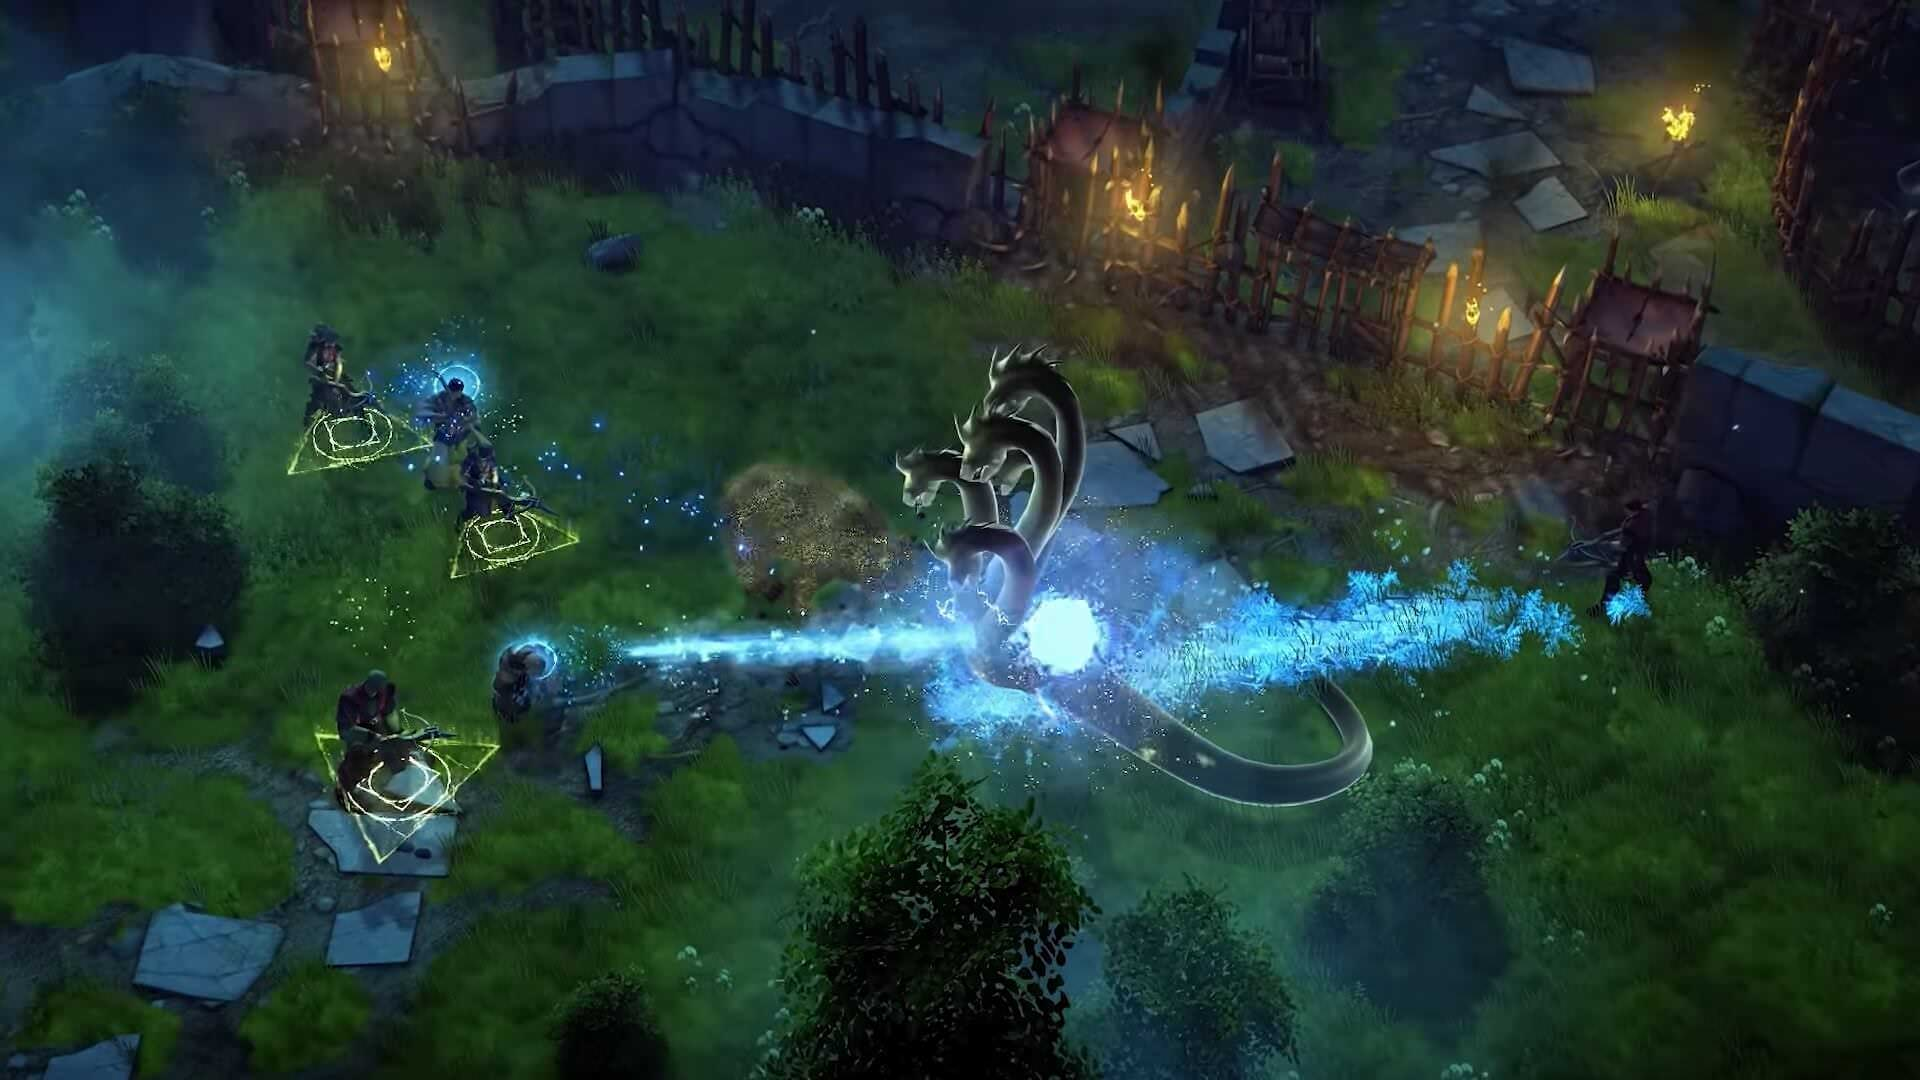 Acheter Pathfinder: Kingmaker Steam Key EUROPE | ENEBA